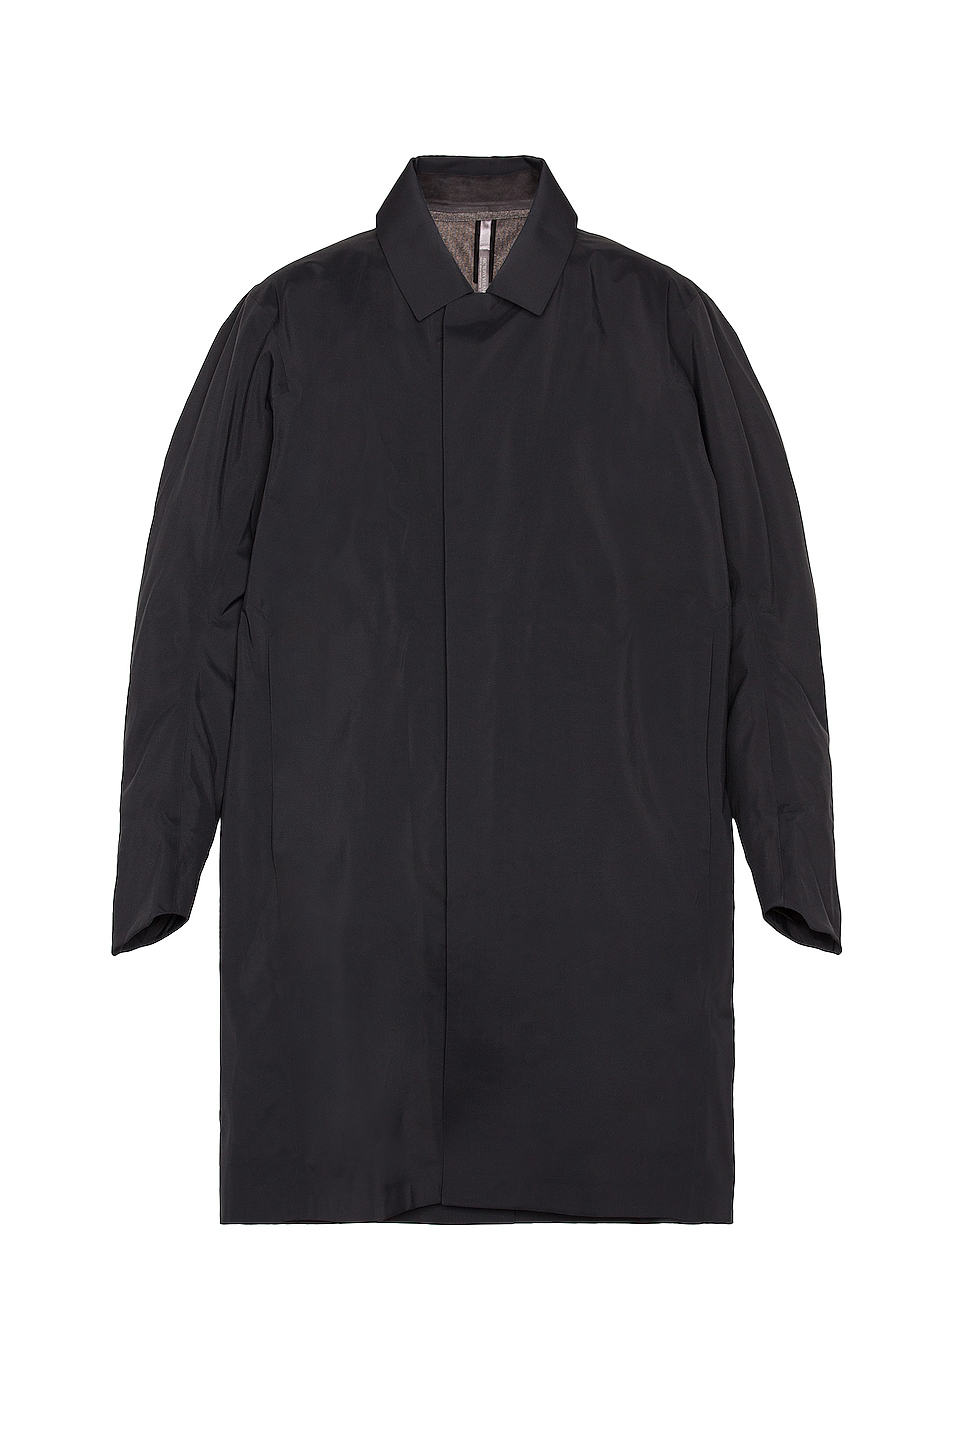 Image 1 of Veilance Partition Coat in Black